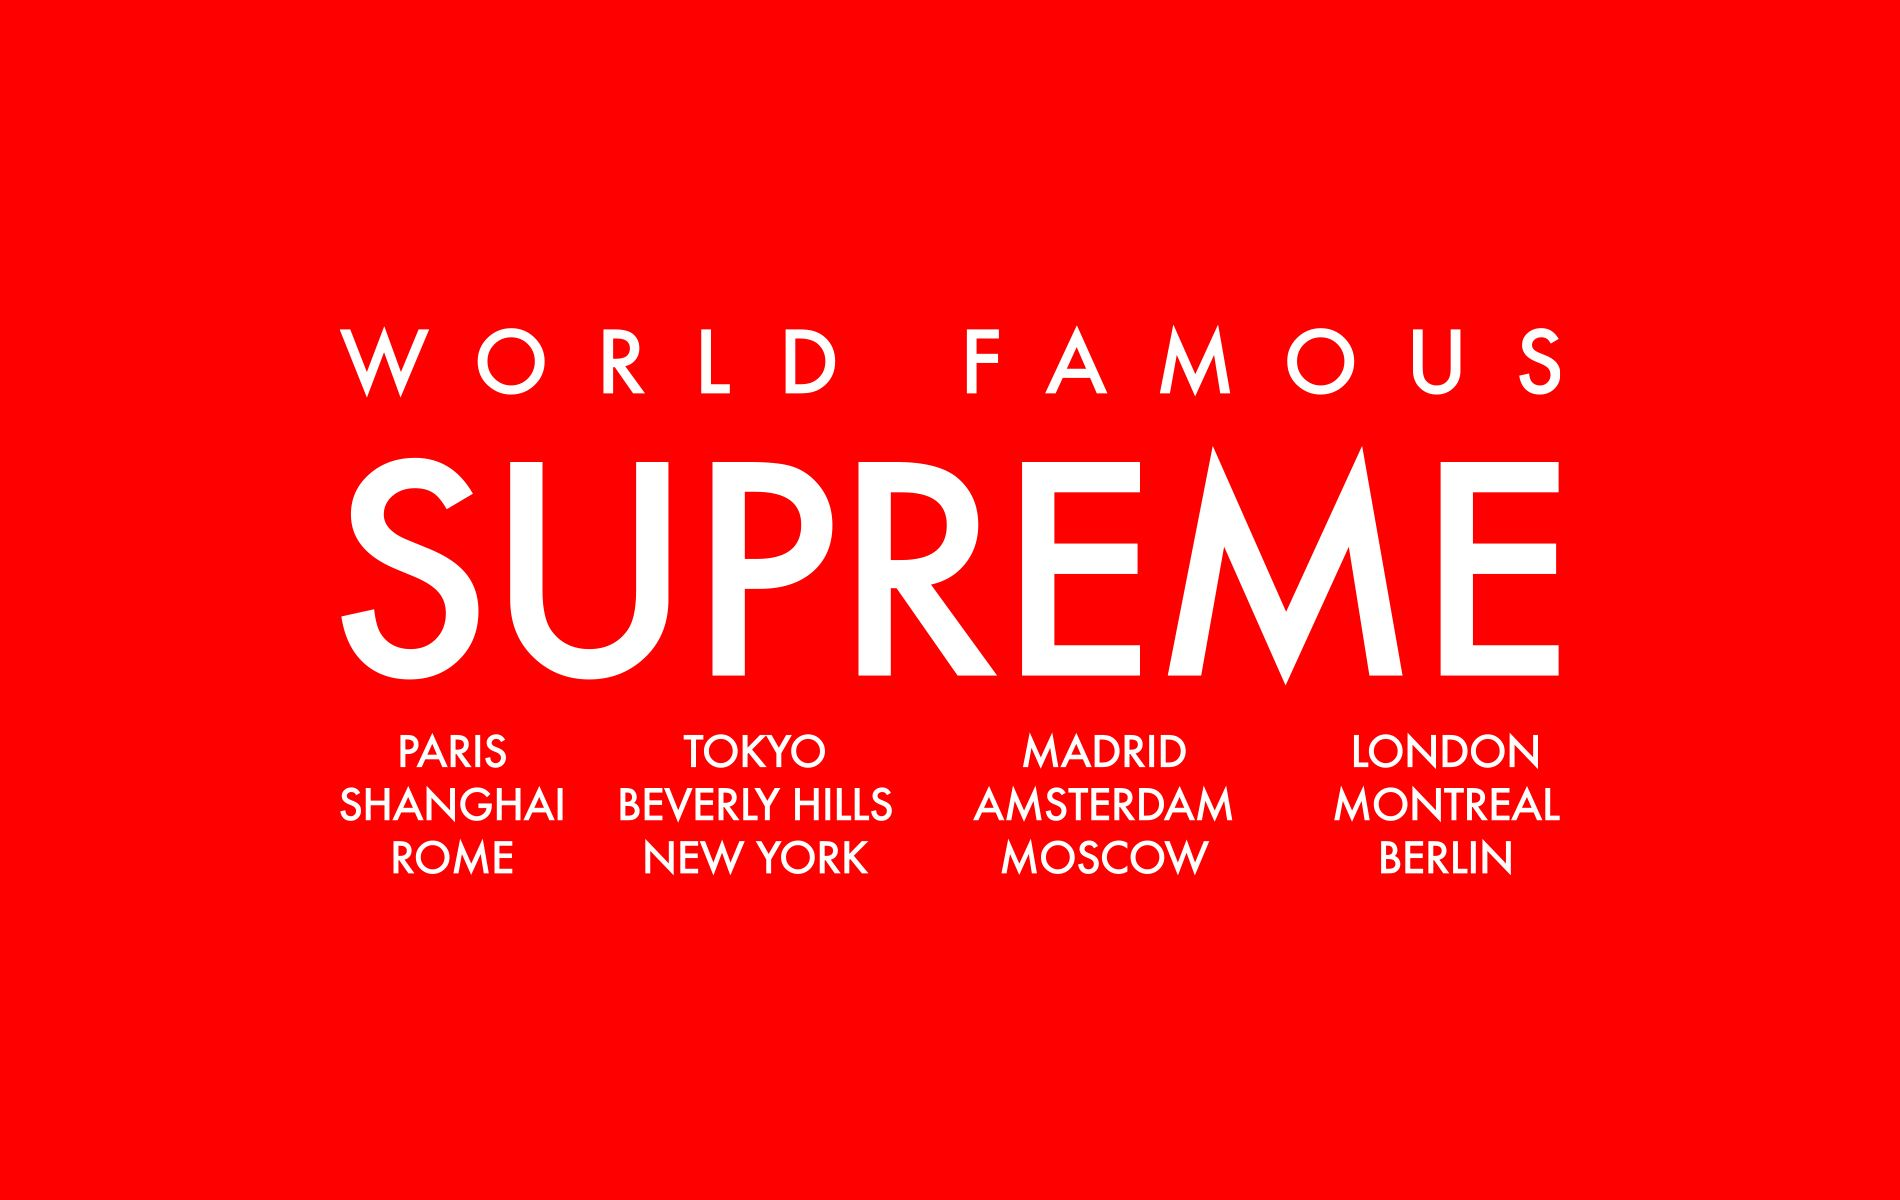 70 Supreme Wallpapers In 4k Allhdwallpapers Supreme Wallpaper Fashion Logo Branding Supreme